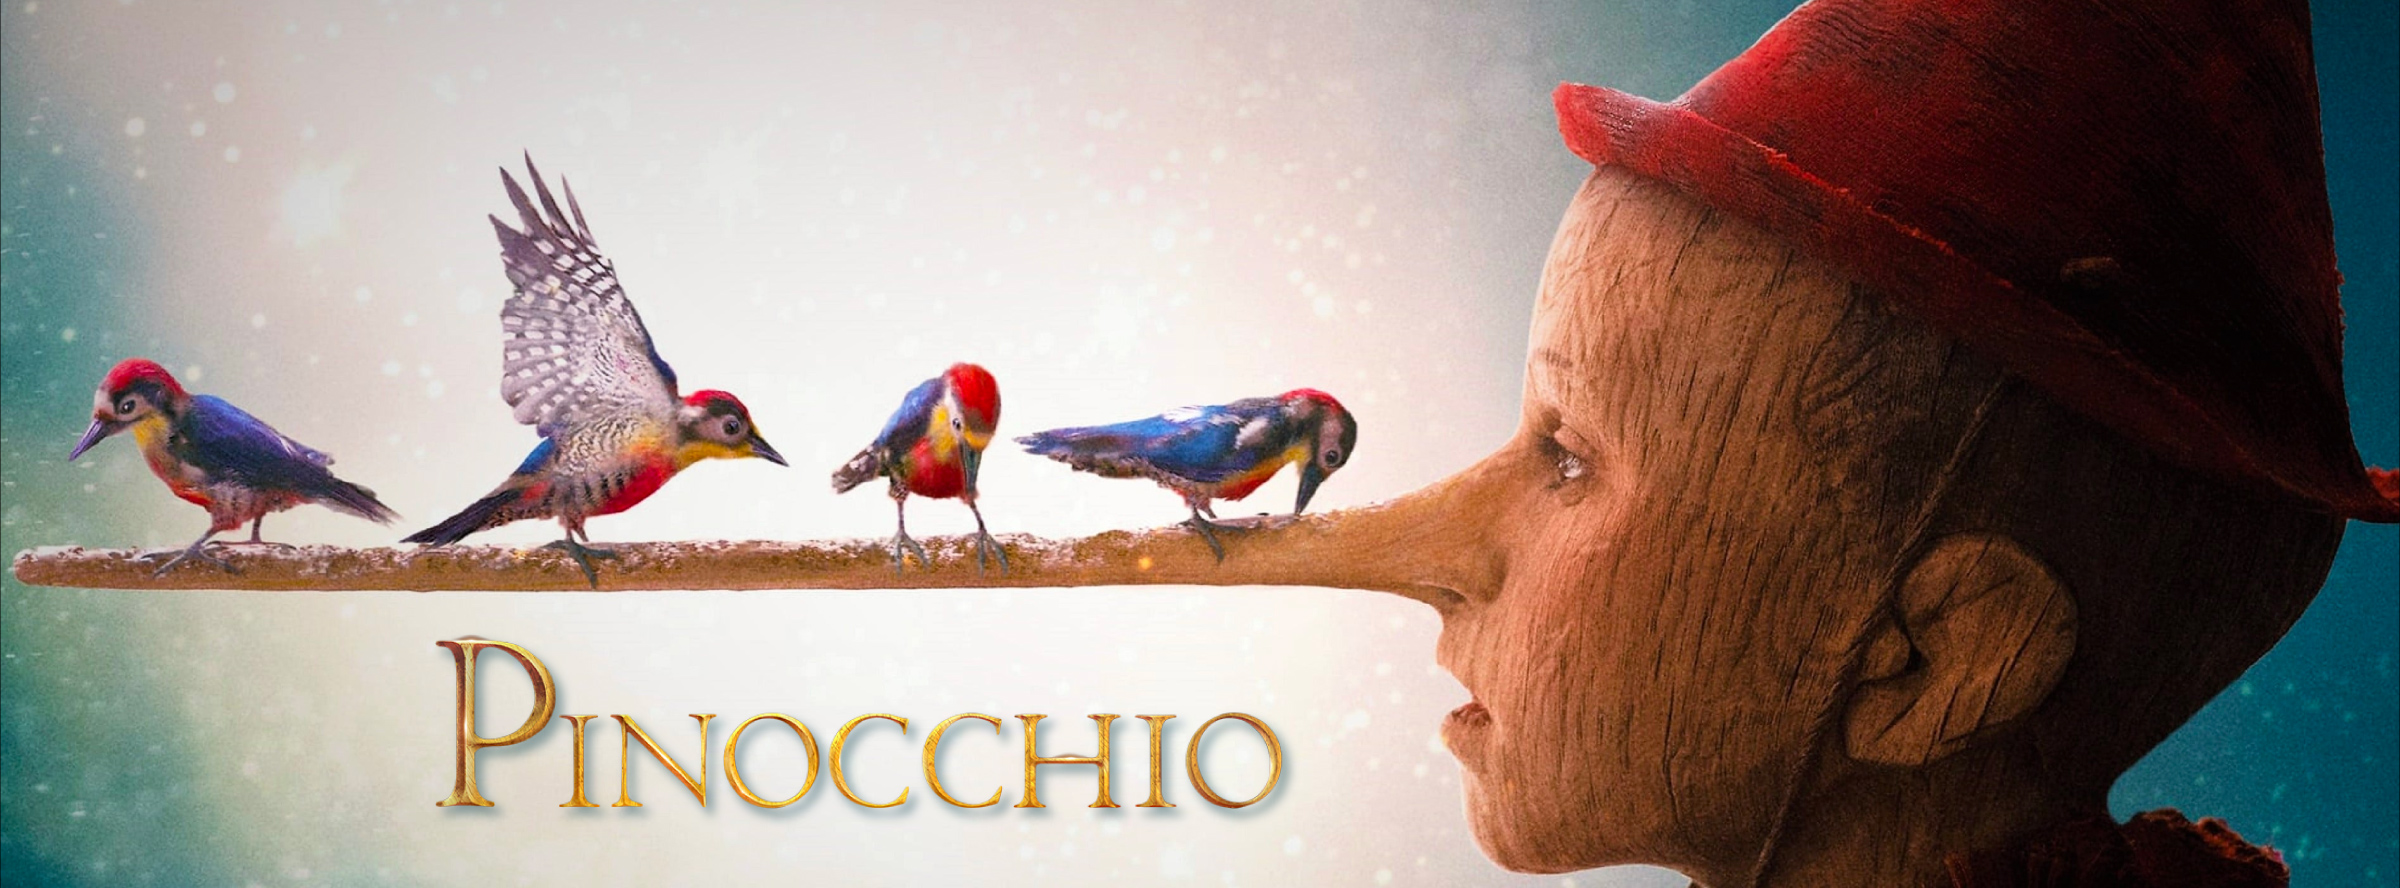 Slider Image for Pinocchio